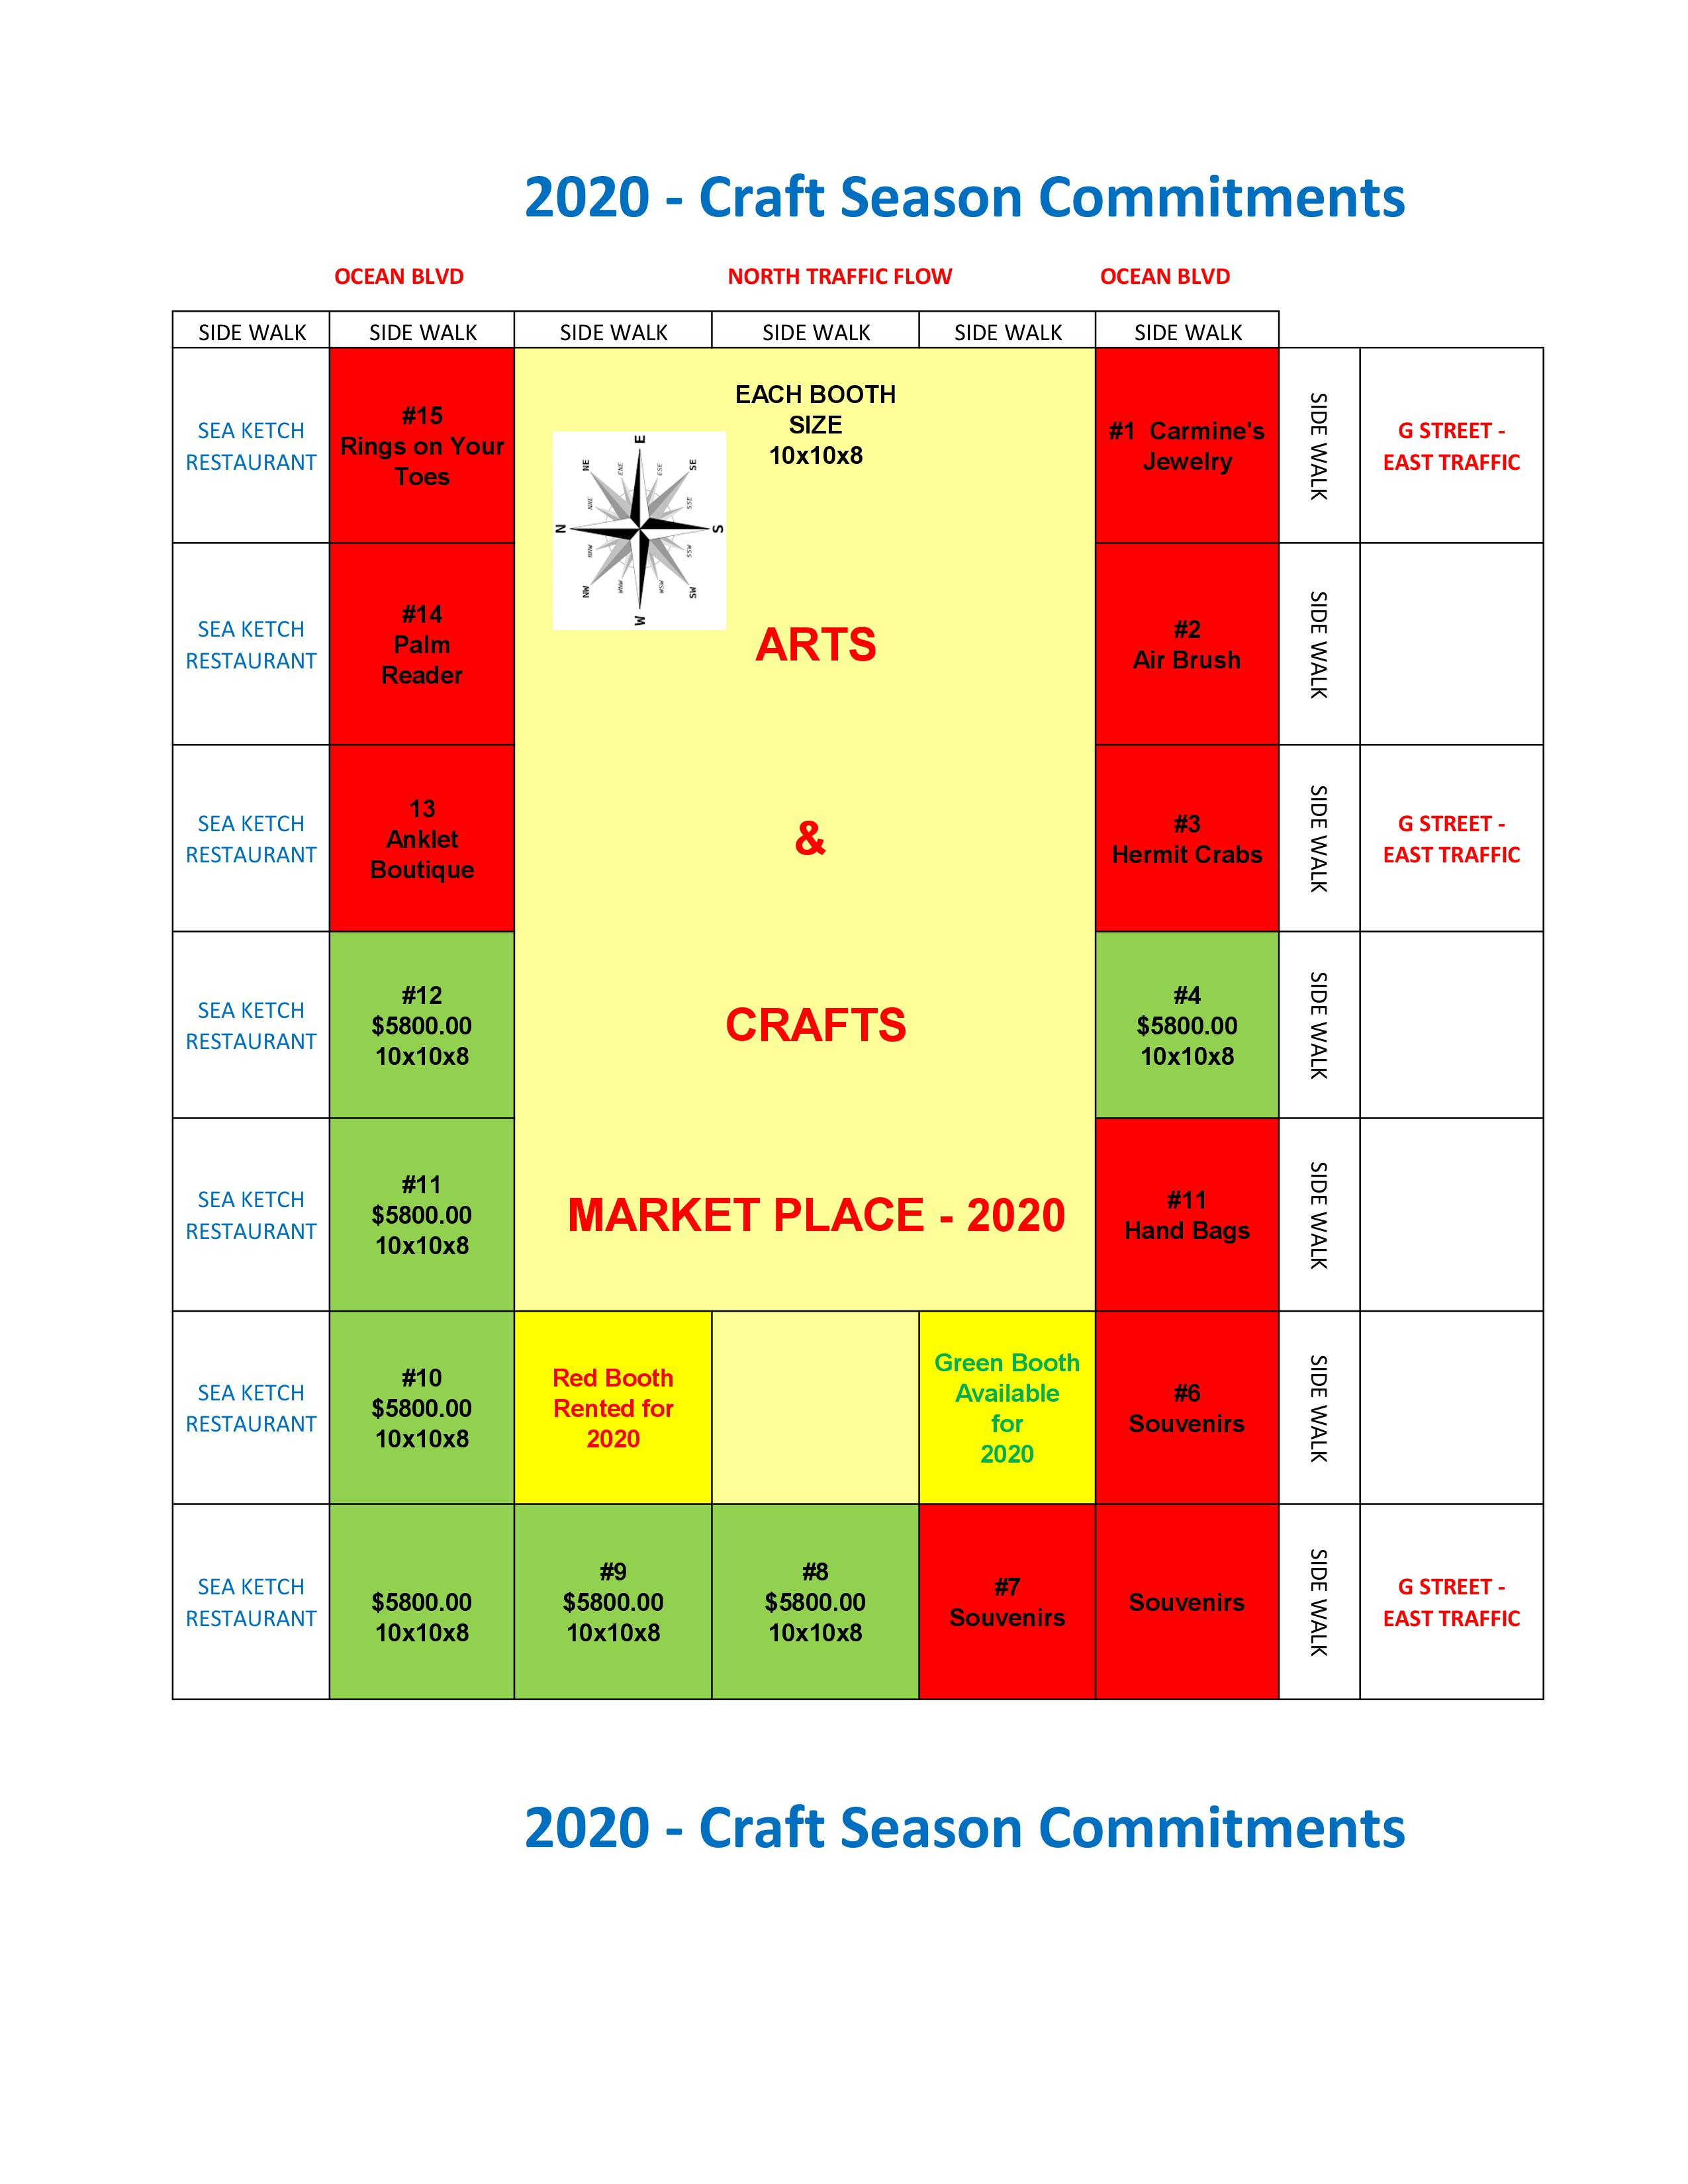 2020 Craft season commitments. Arts and crafts market place 2020